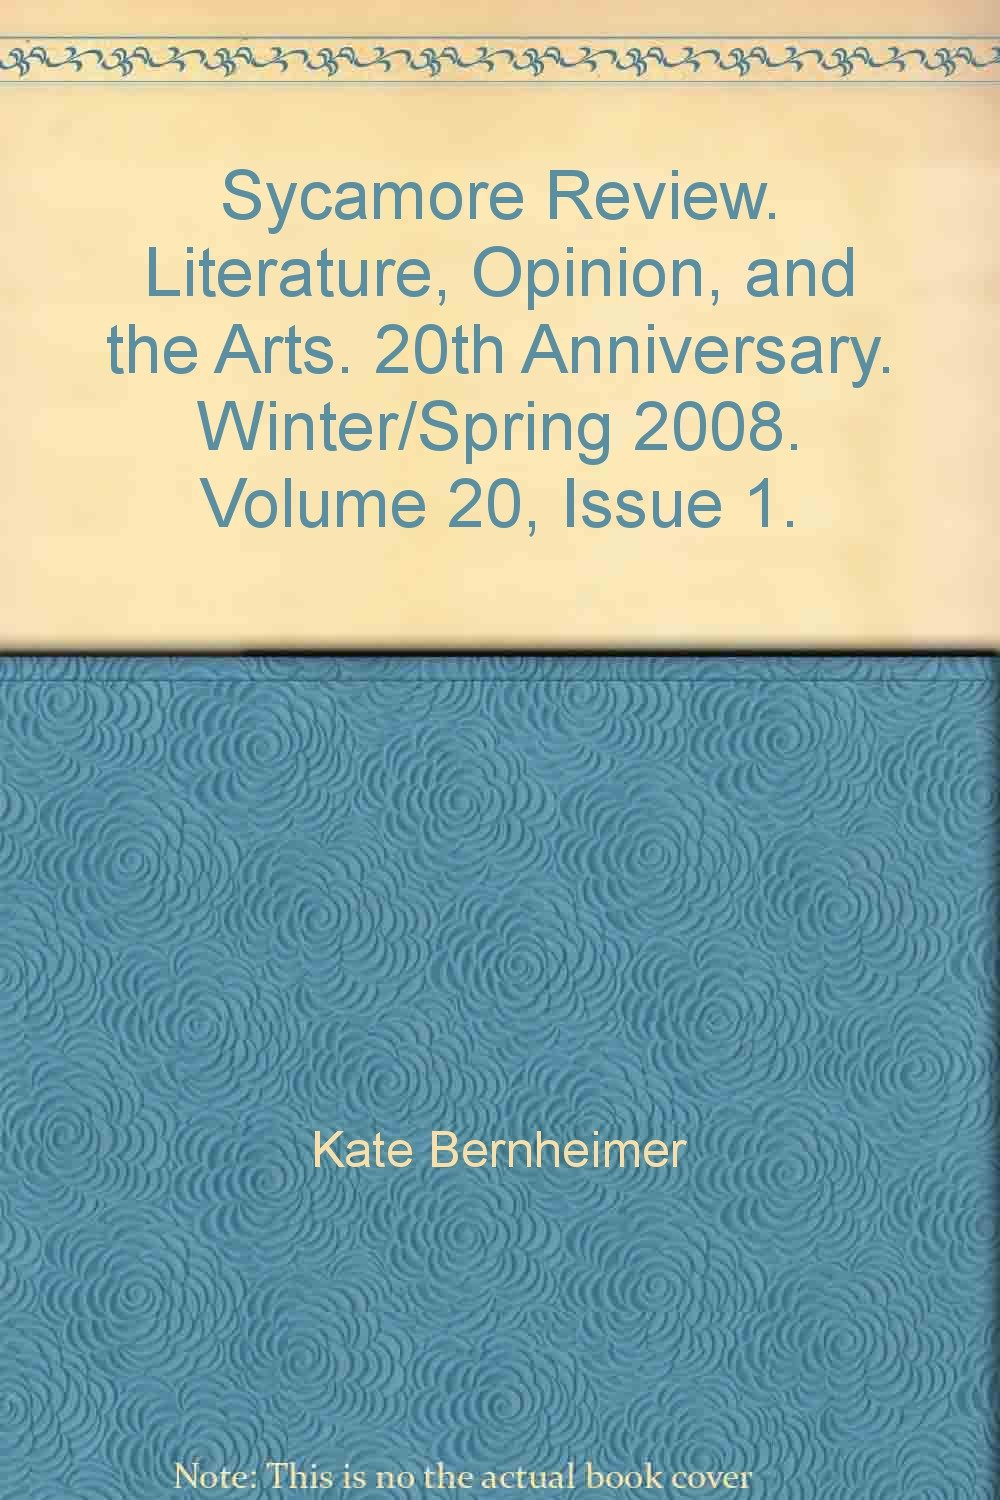 Download Sycamore Review. Literature, Opinion, and the Arts. 20th Anniversary. Winter/Spring 2008. Volume 20, Issue 1. PDF